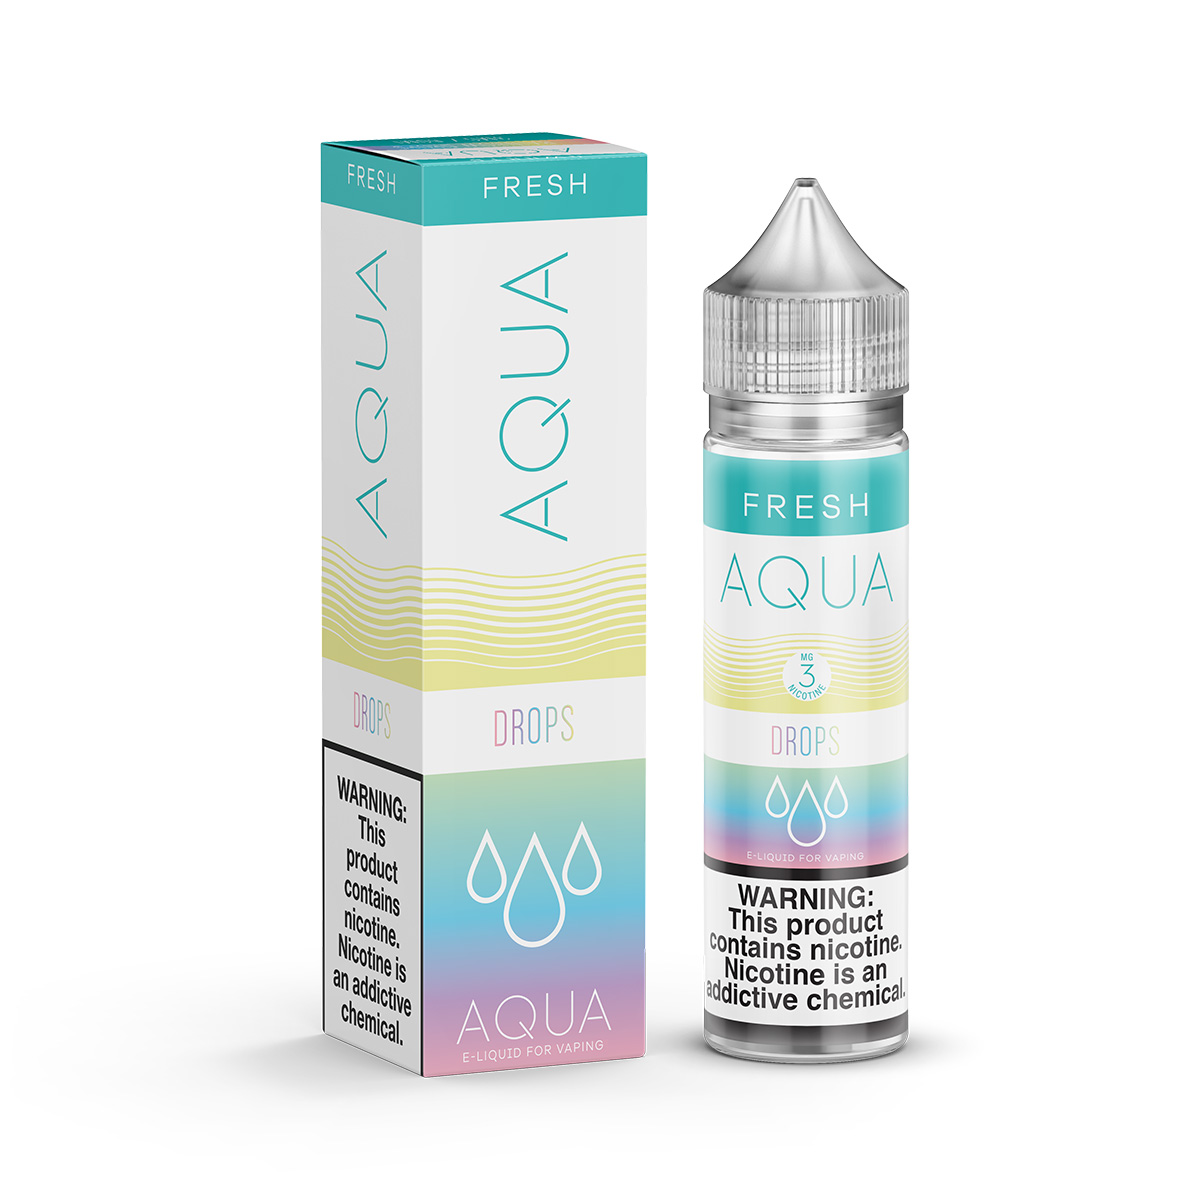 Aqua-Fresh-60ml-Drops-3mg.jpg